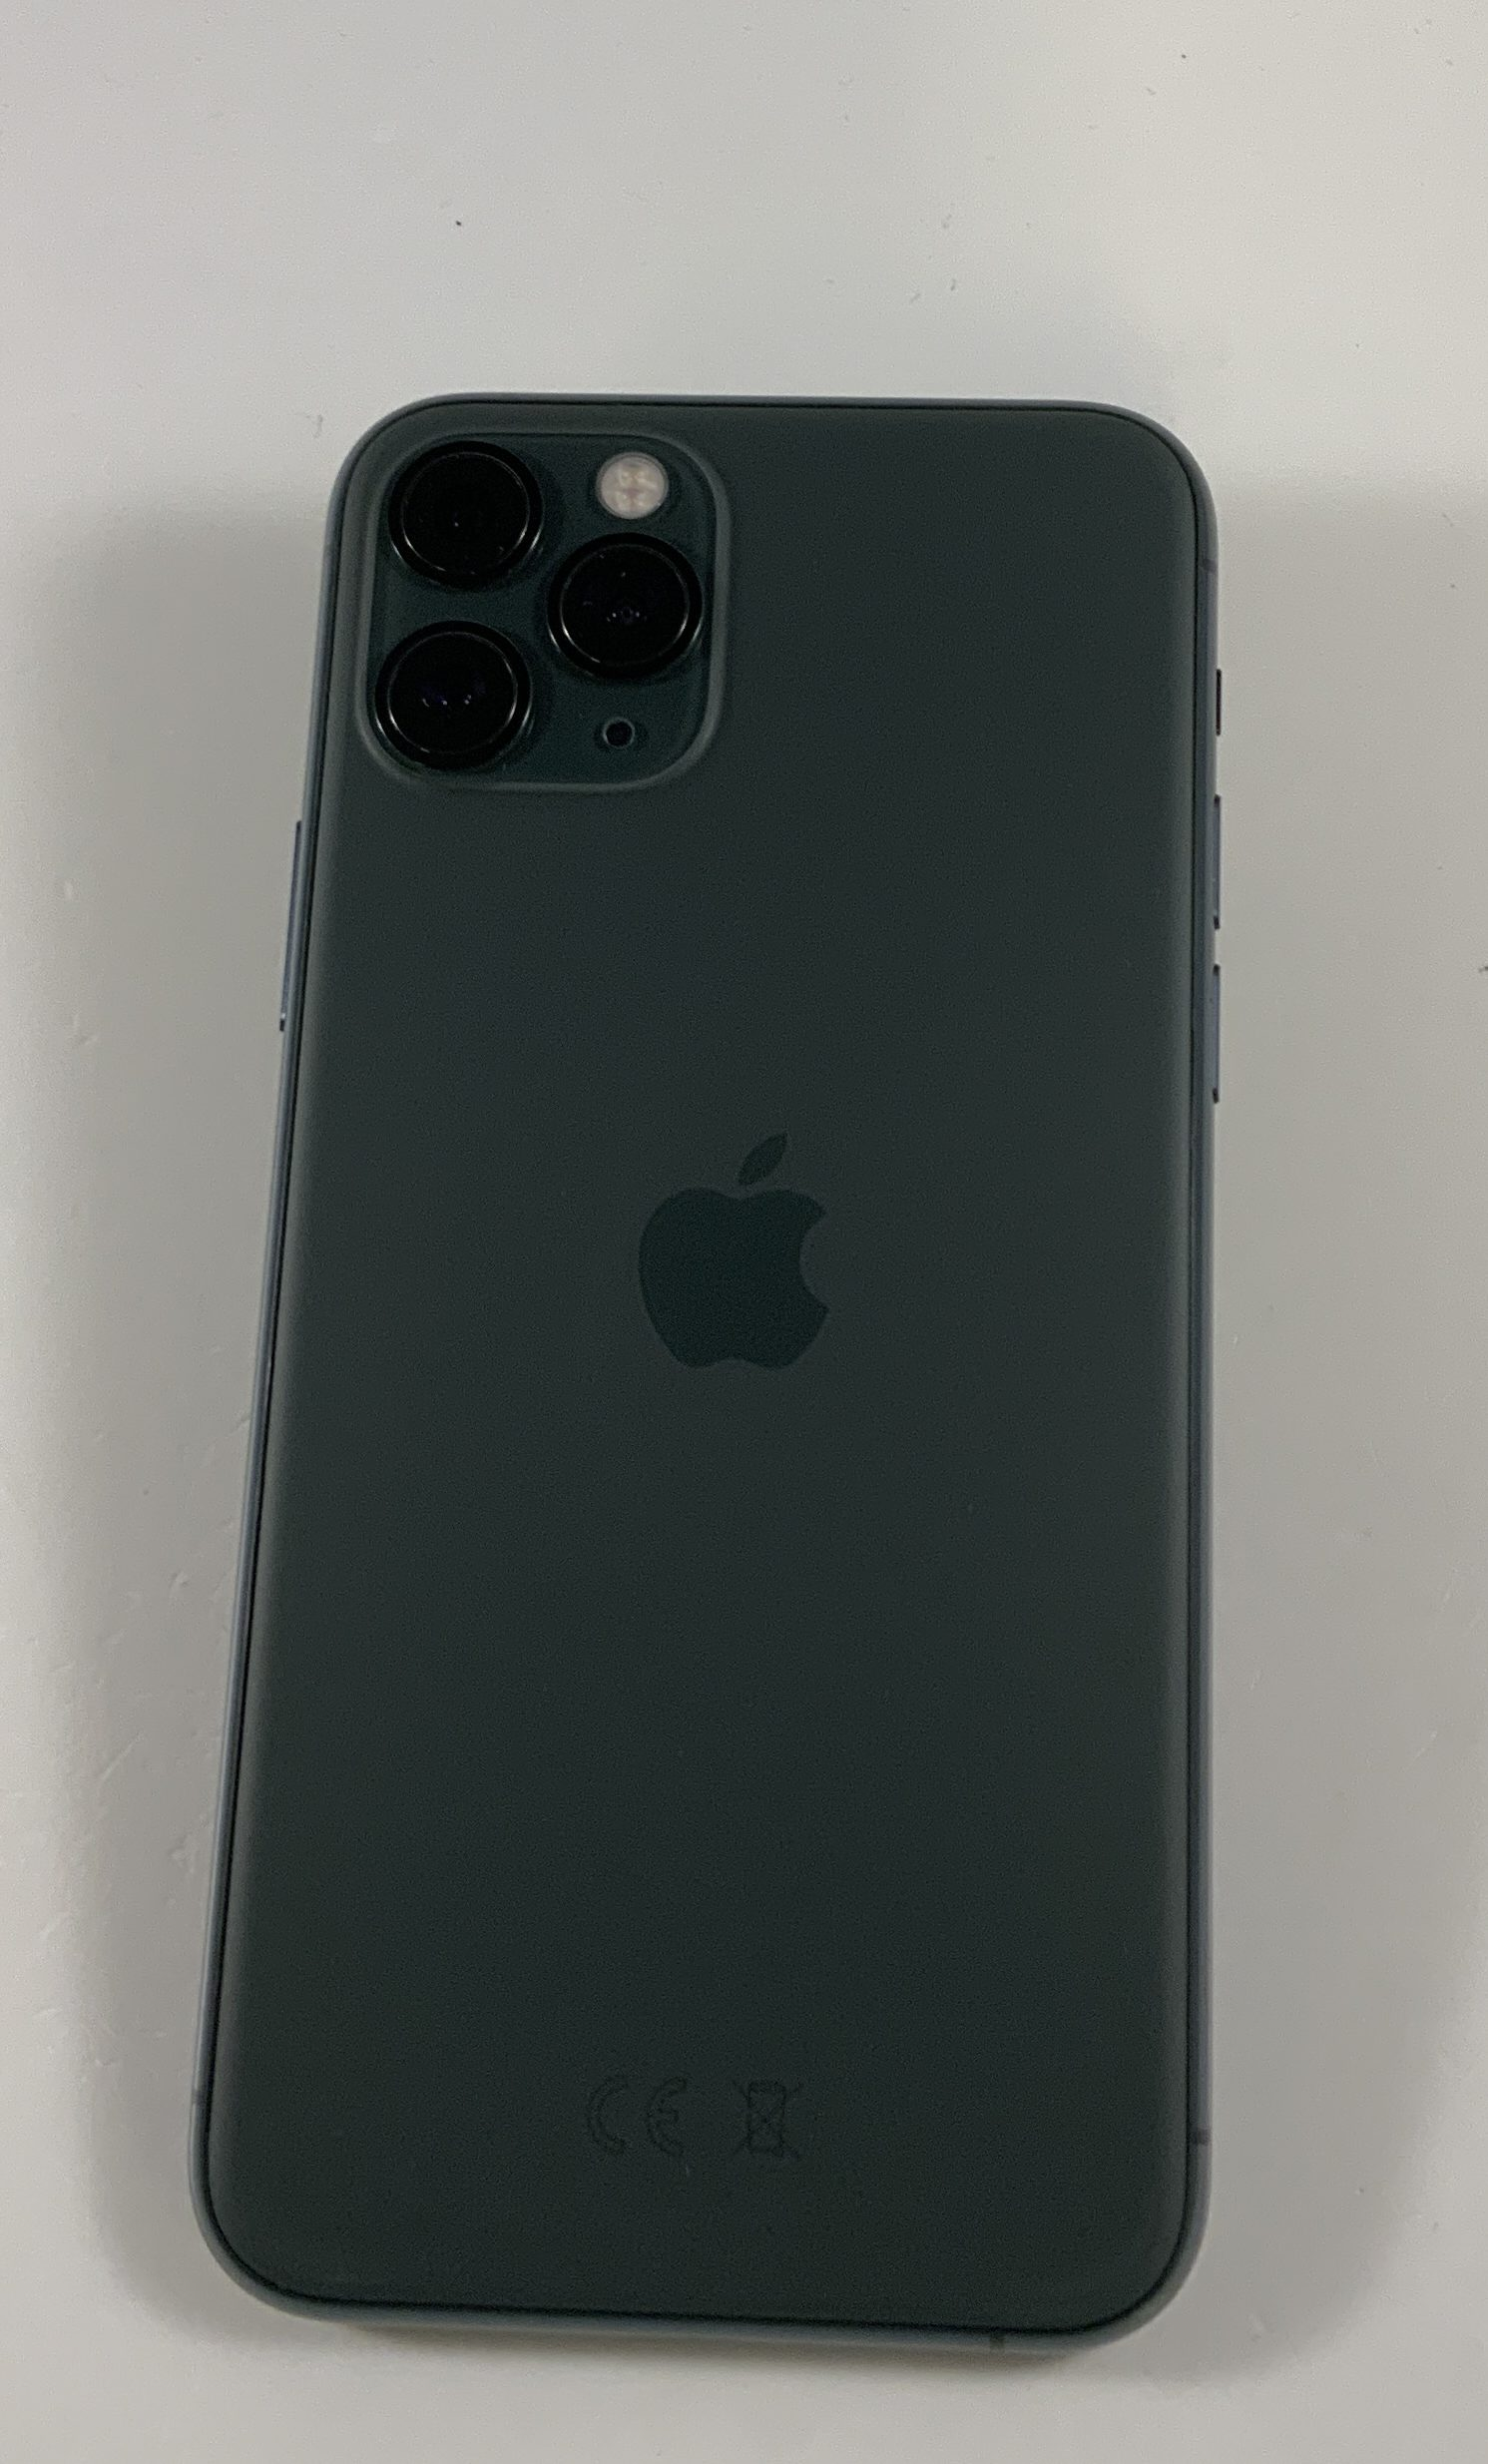 iPhone 11 Pro 64GB, 64GB, Midnight Green, image 2